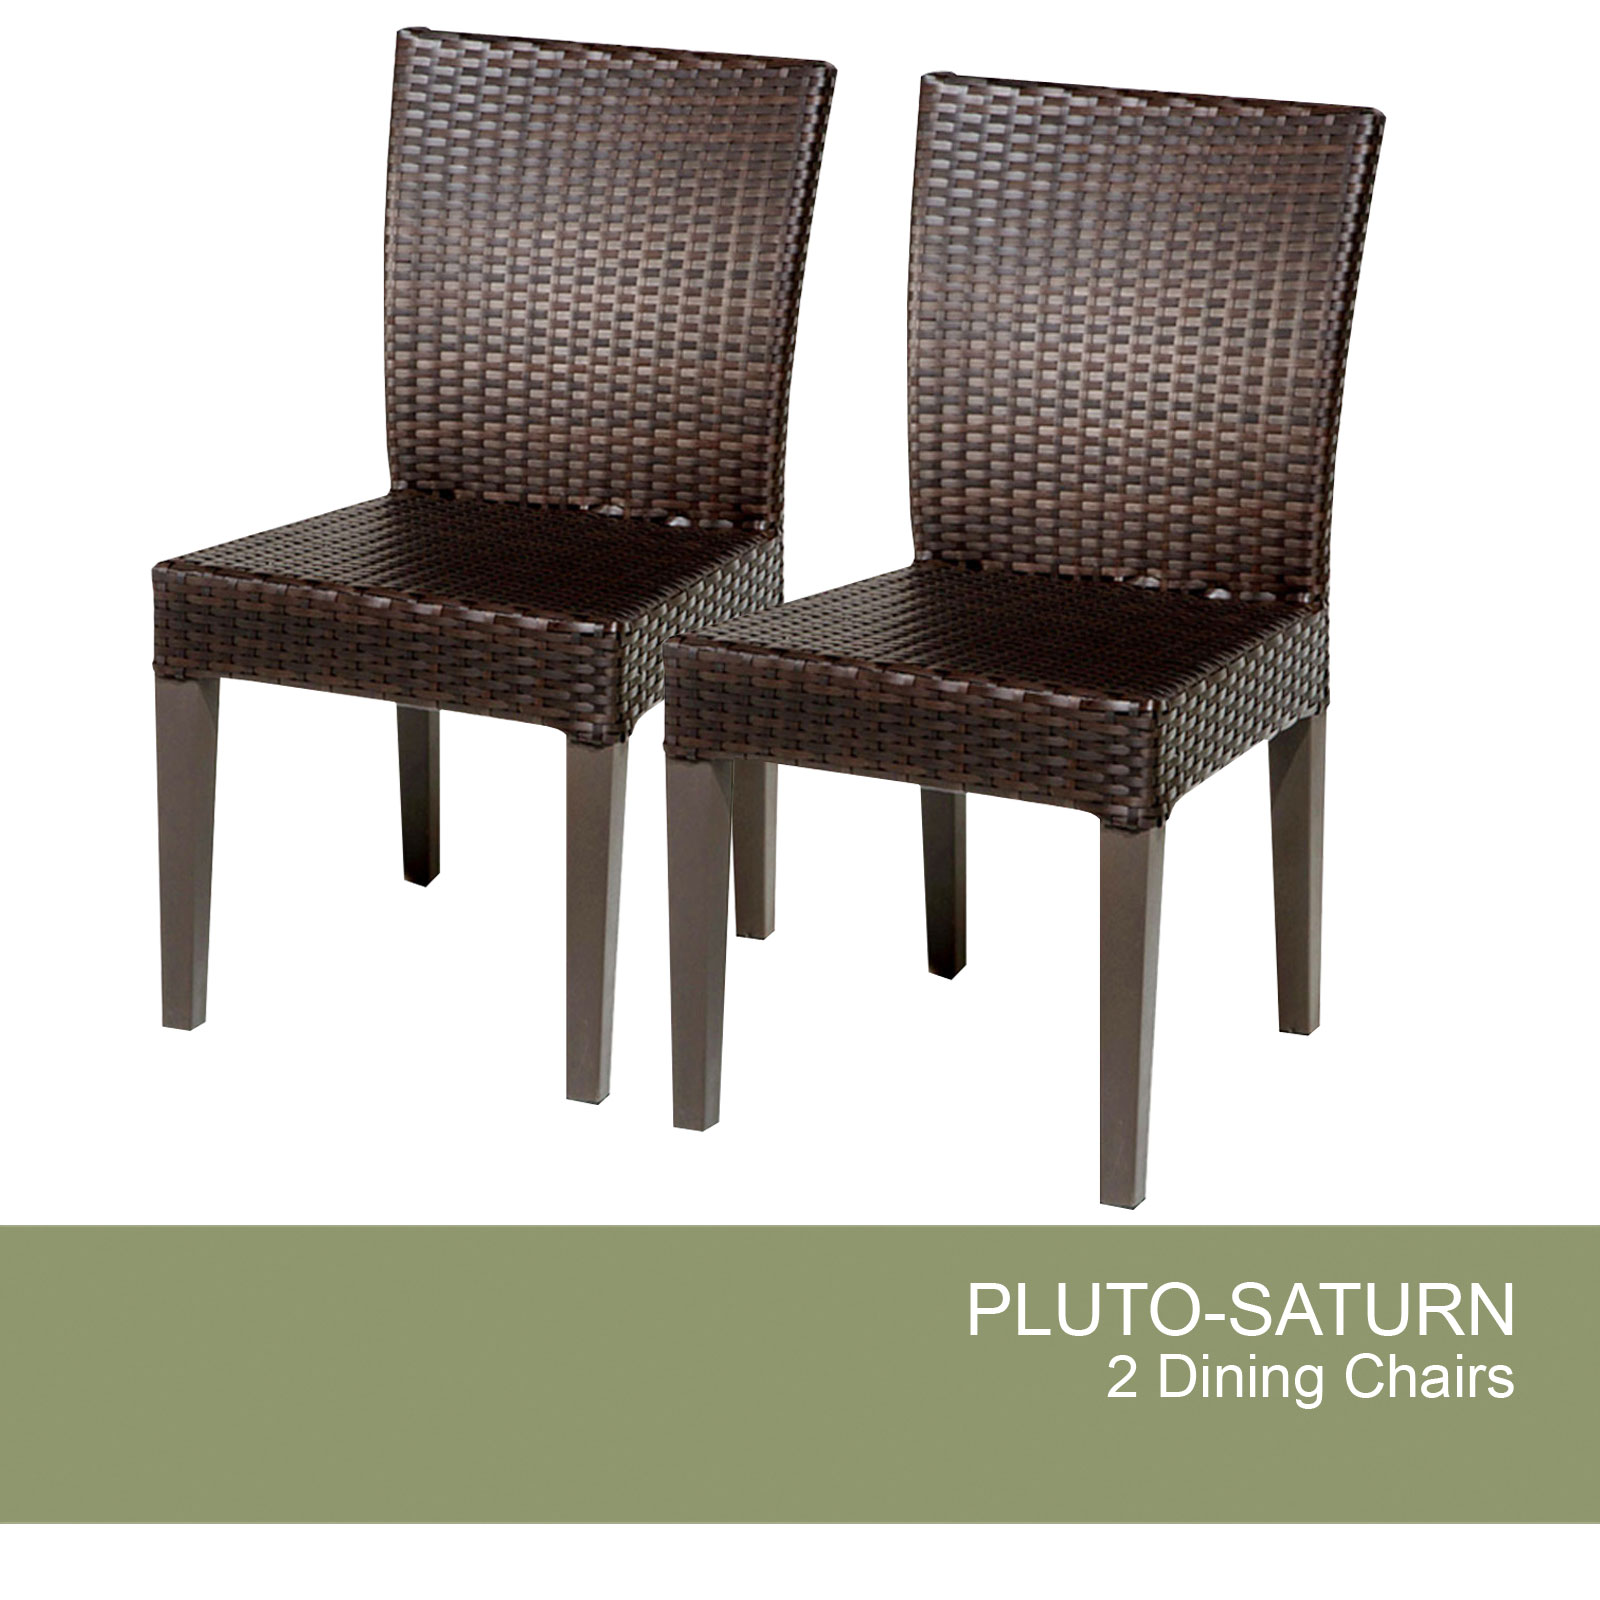 2 Pluto/Saturn Armless Dining Chairs - Design Furnishings